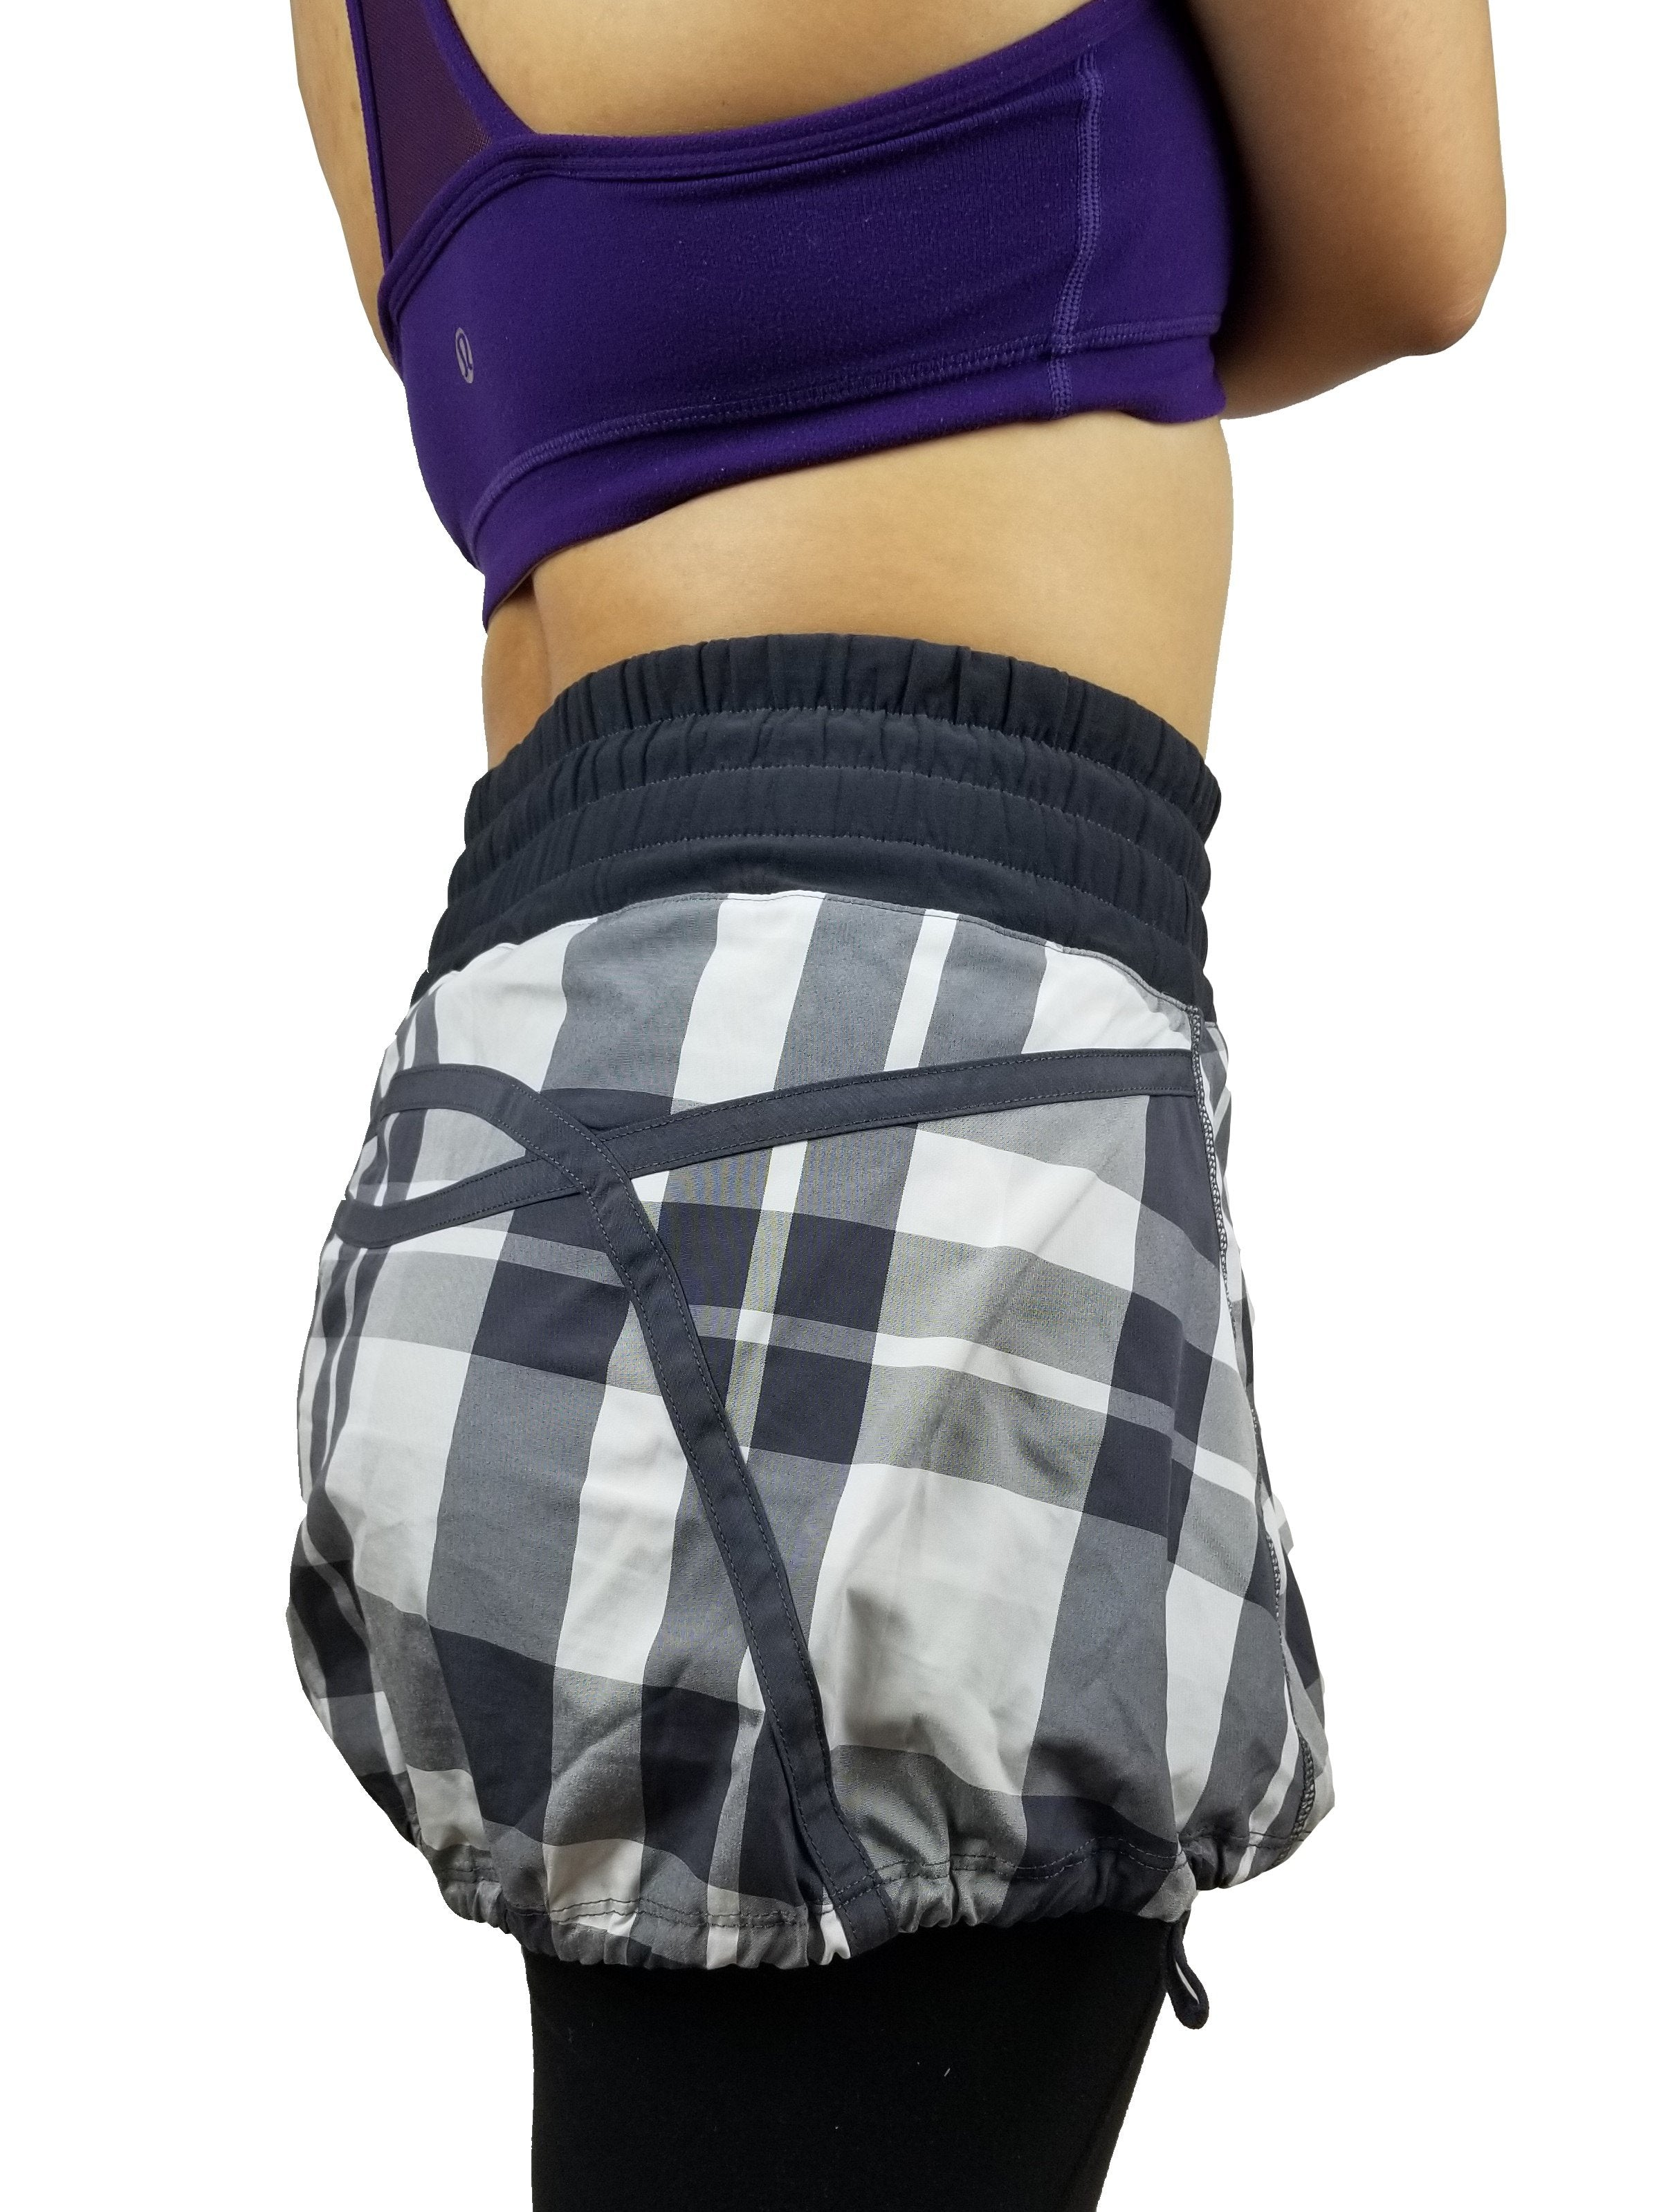 Lululemon Plaid Tracker Skirt, Vancouver street wear/Yoga pants. Lululemon size 2. https://info.lululemon.com/help/size-chart, Black, Grey, Polyester, Yoga, yoga pants, athletic wear, work out, comfortable pants, fitness, fit